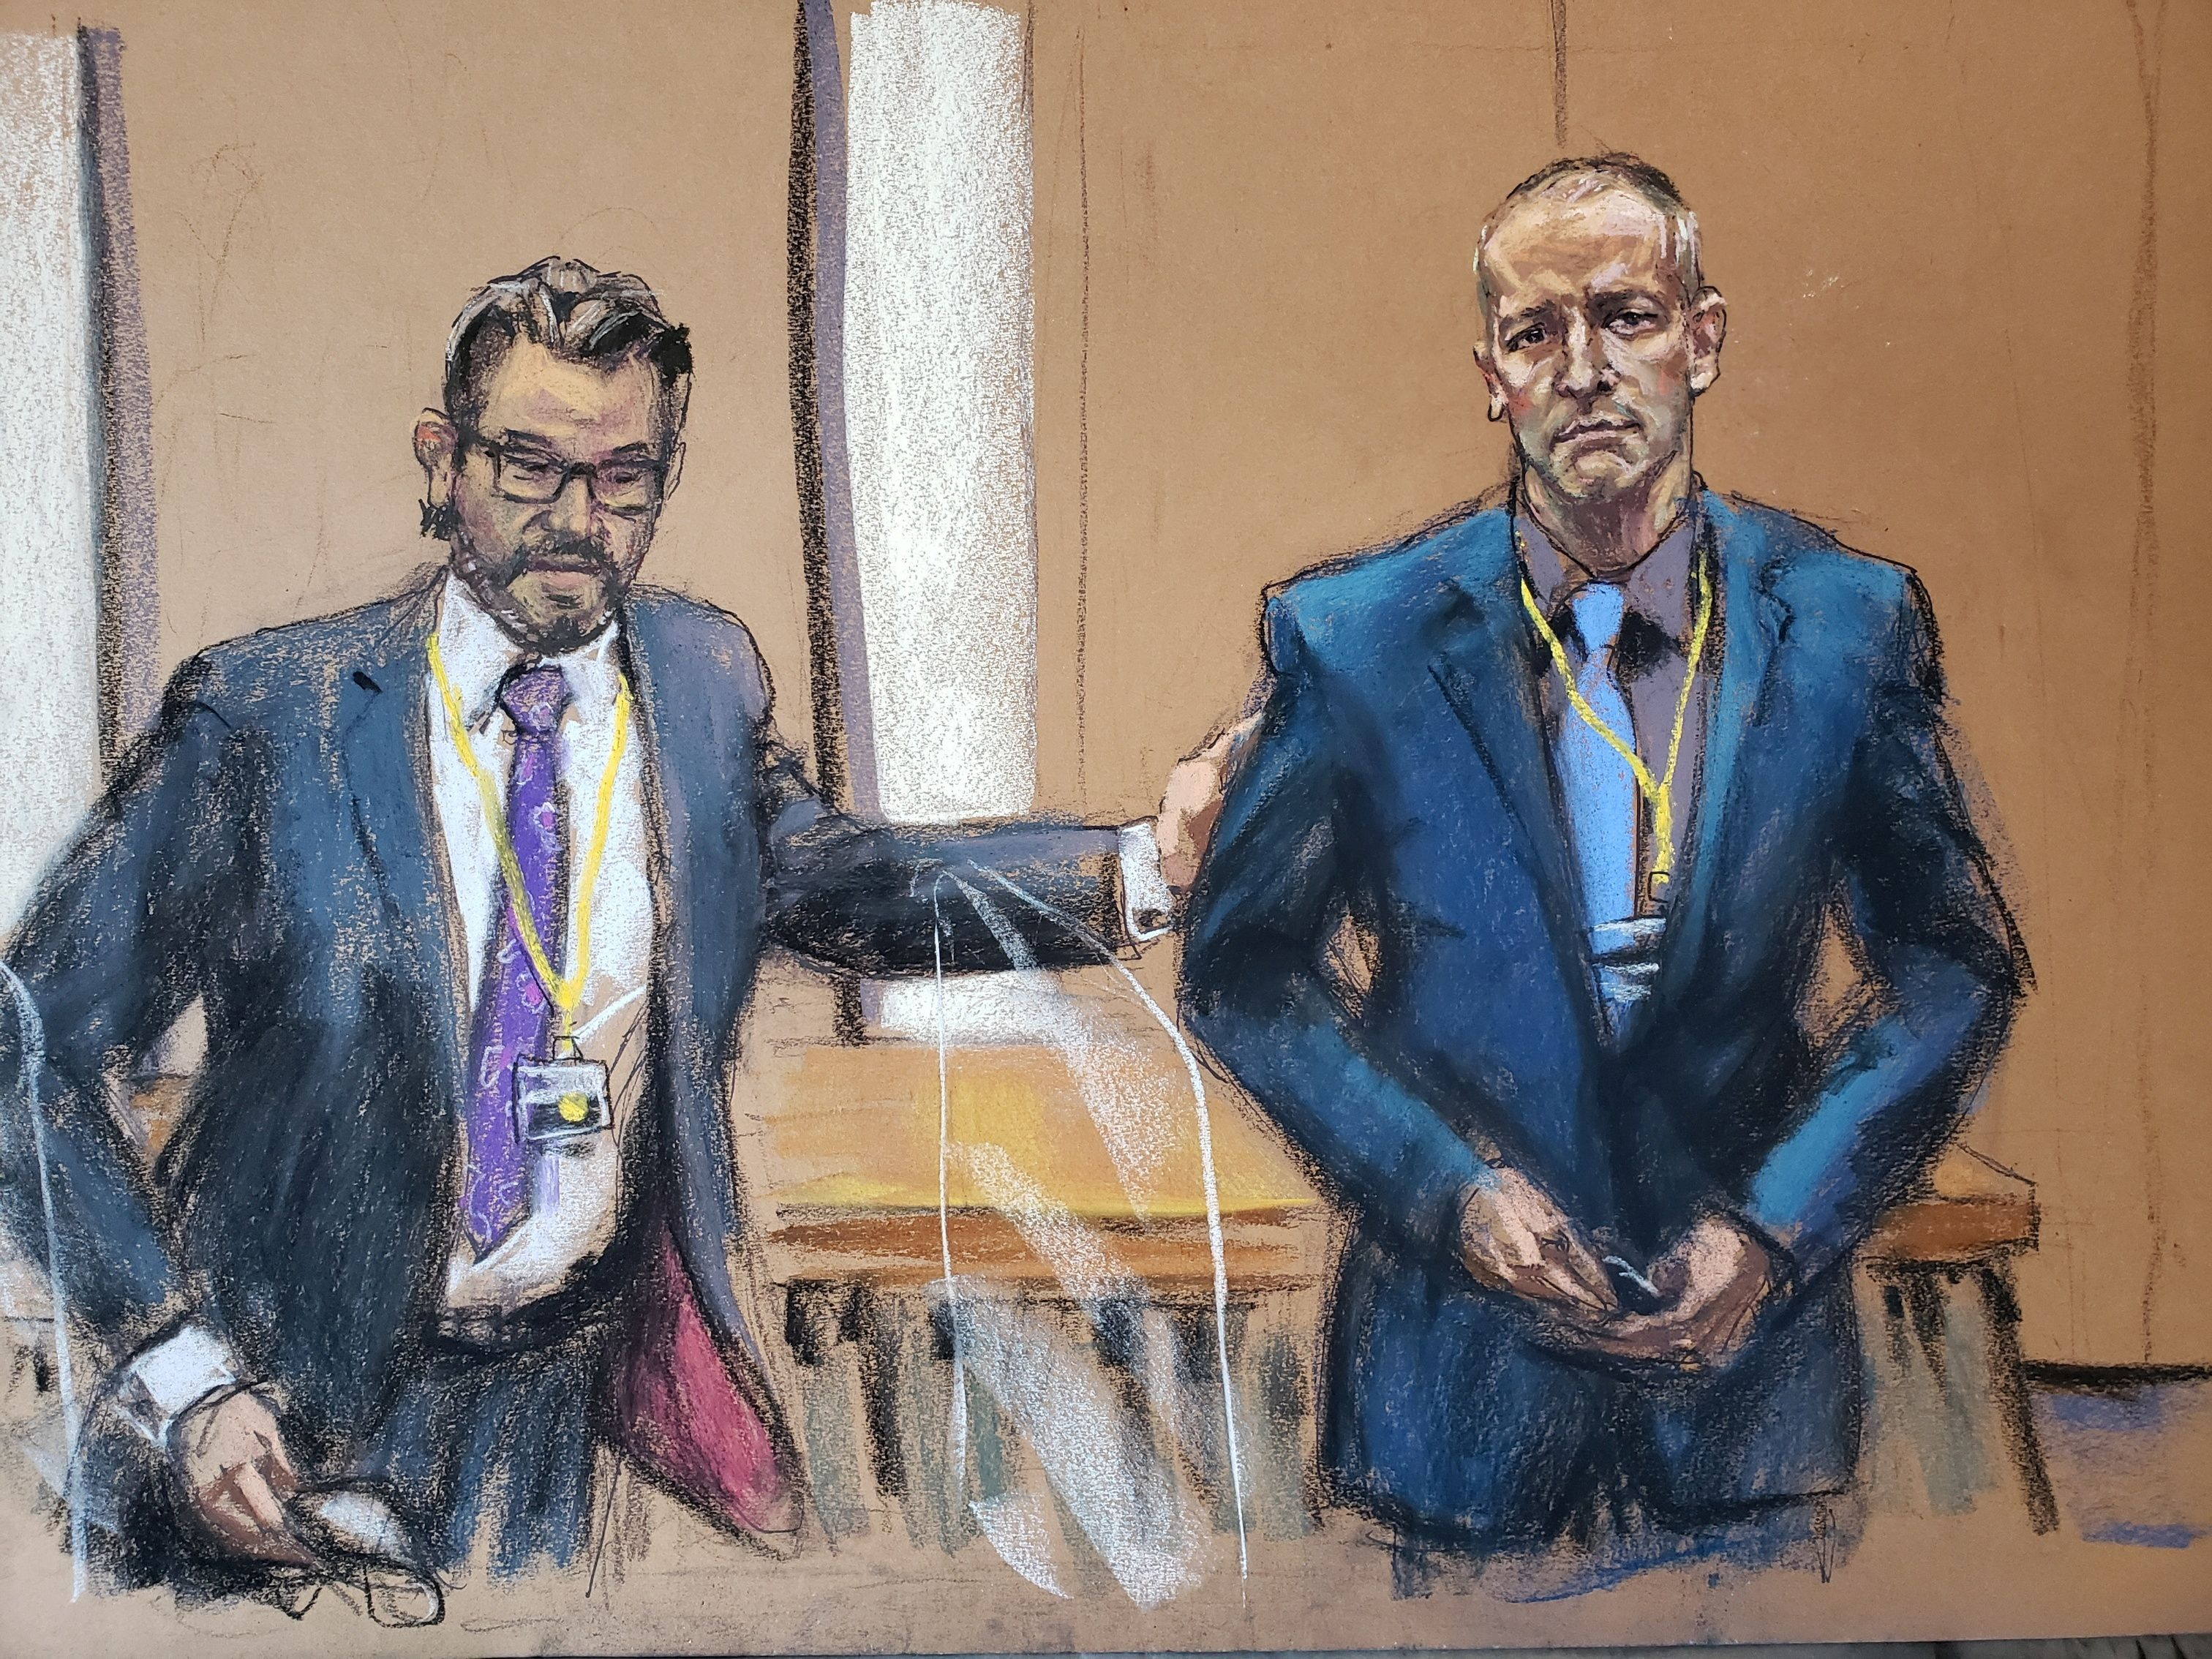 Defense attorney Eric Nelson introduces Derek Chauvin, the former Minneapolis police officer facing murder charges in the death of George Floyd, to potential jurors during jury selection in his trial in Minneapolis, Minnesota, U.S., March 15, 2021 in this courtroom sketch from a video feed of the proceedings. REUTERS/Jane Rosenberg